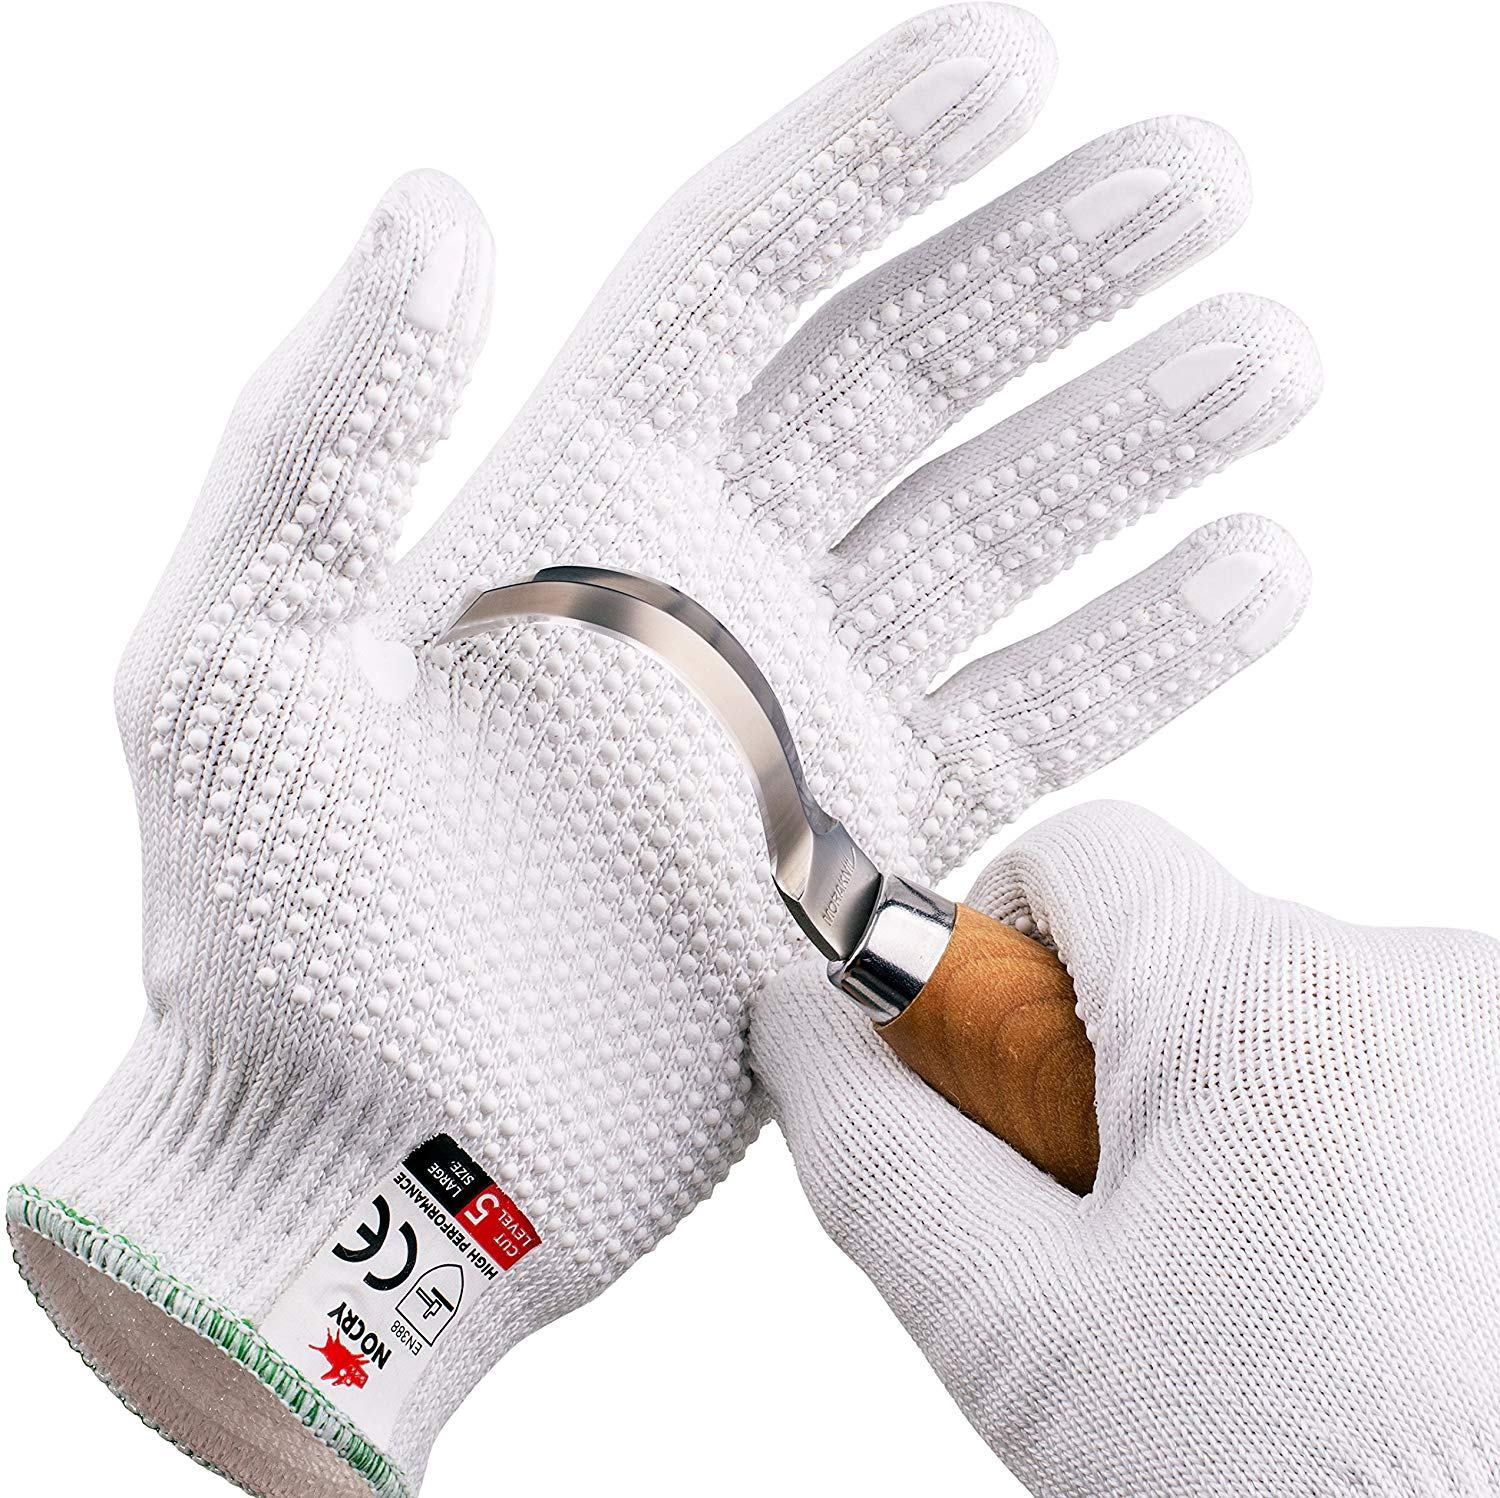 Nocry nocry3m protective work gloves